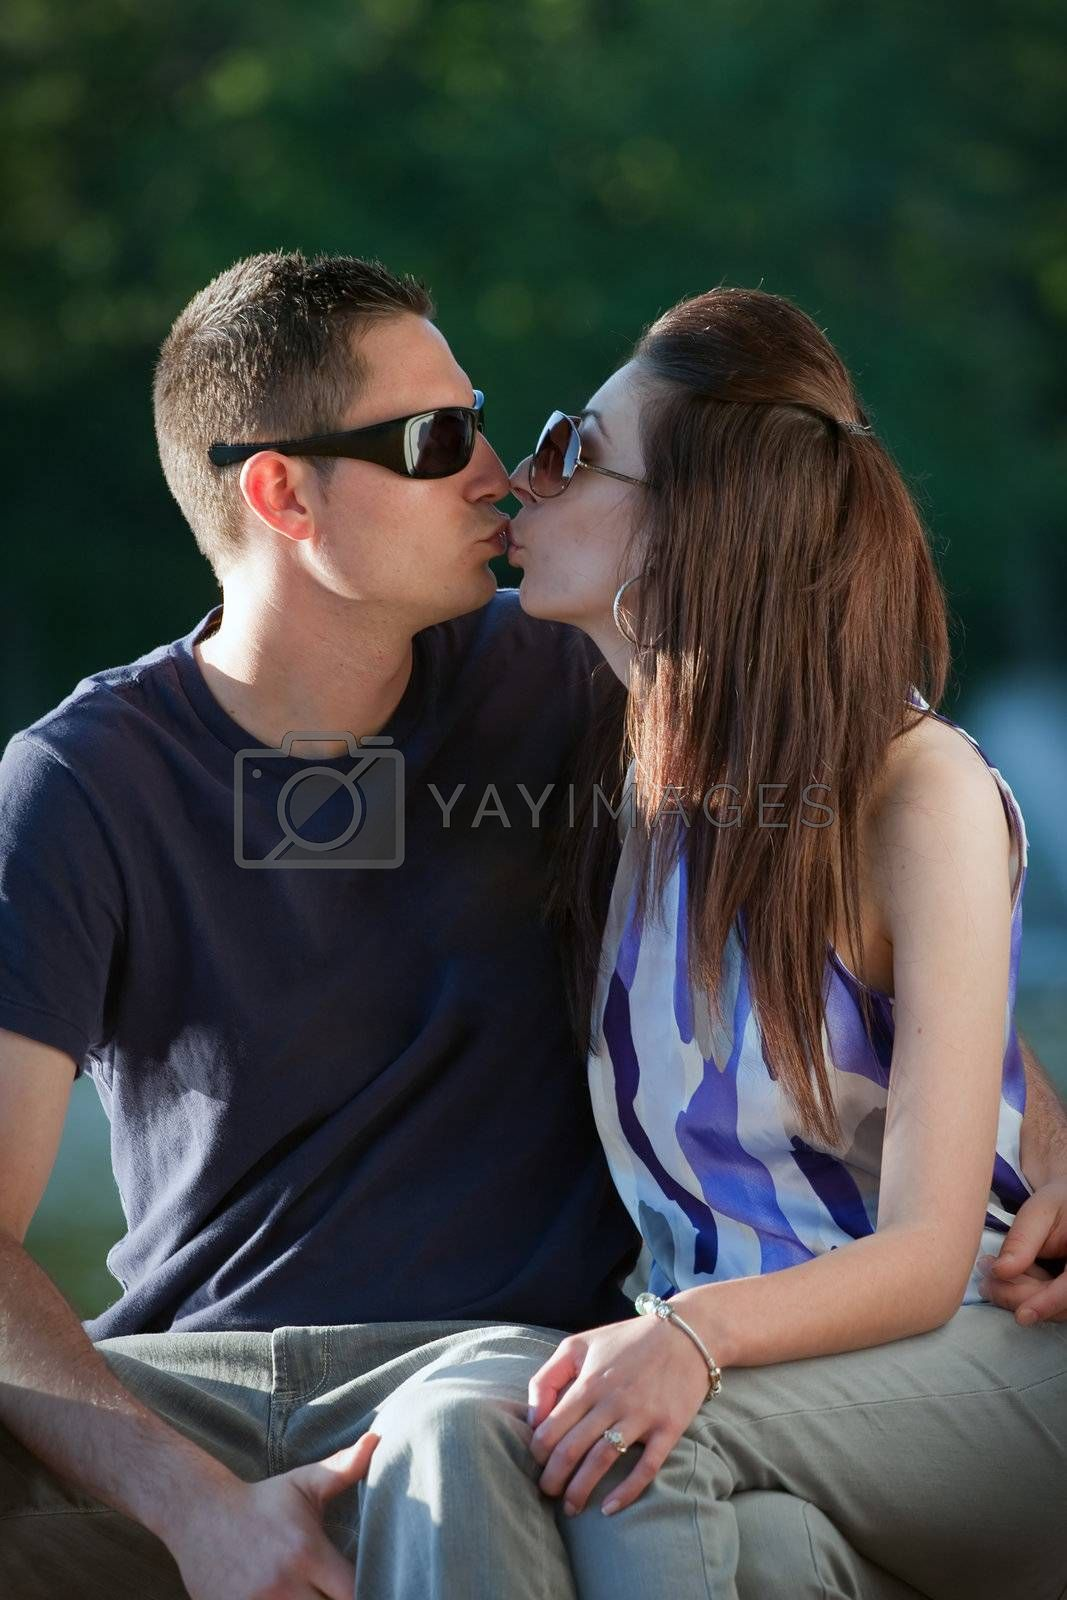 A young happy couple making out kissing.